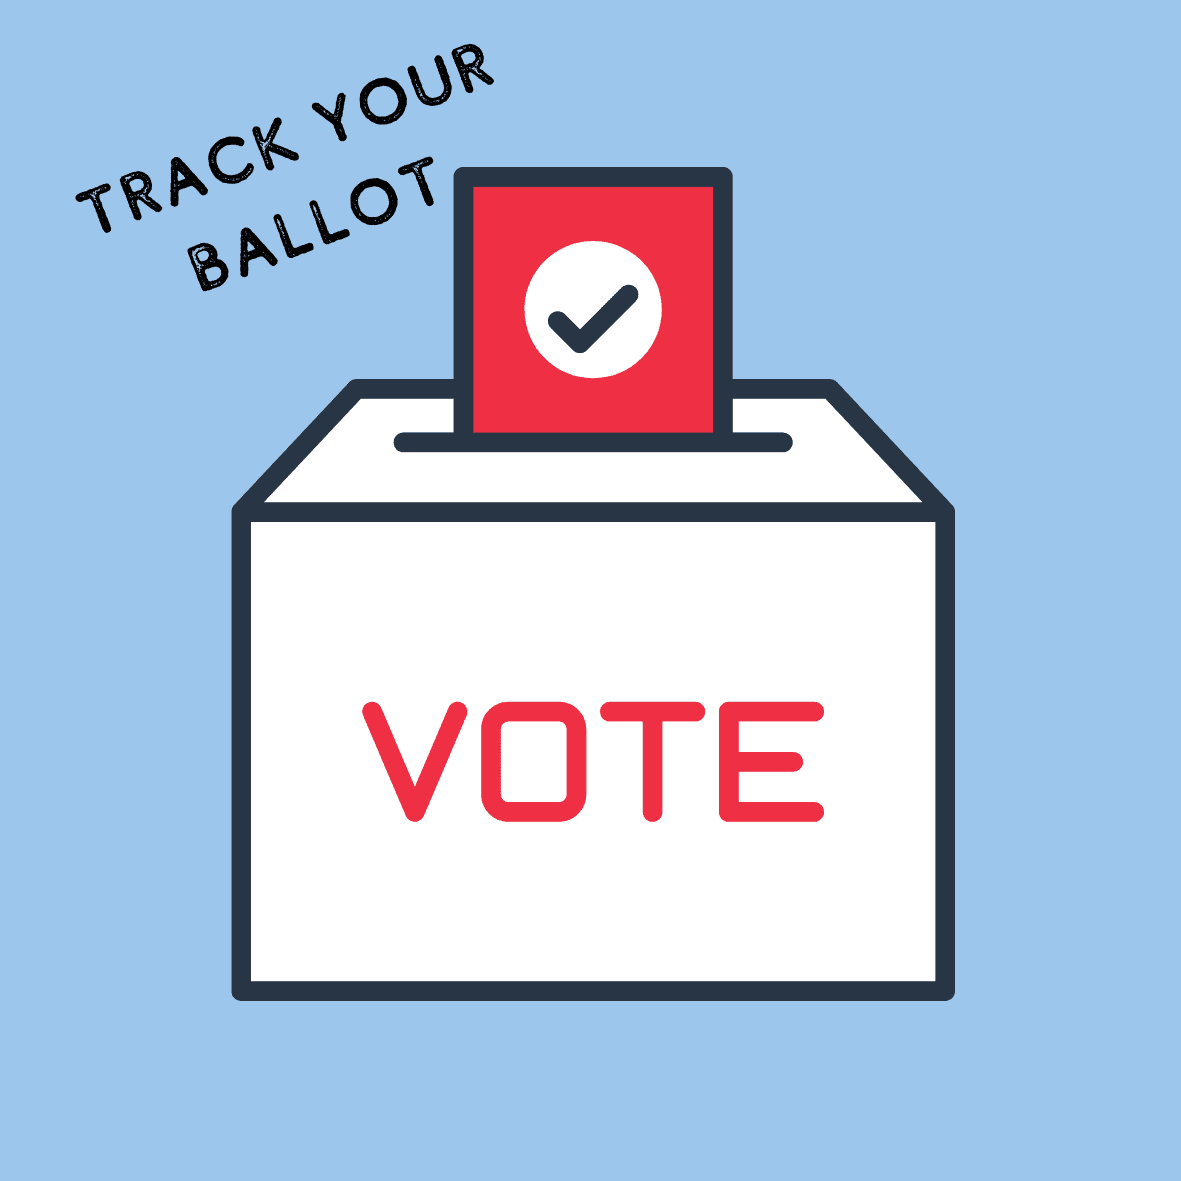 Track your ballot graphic